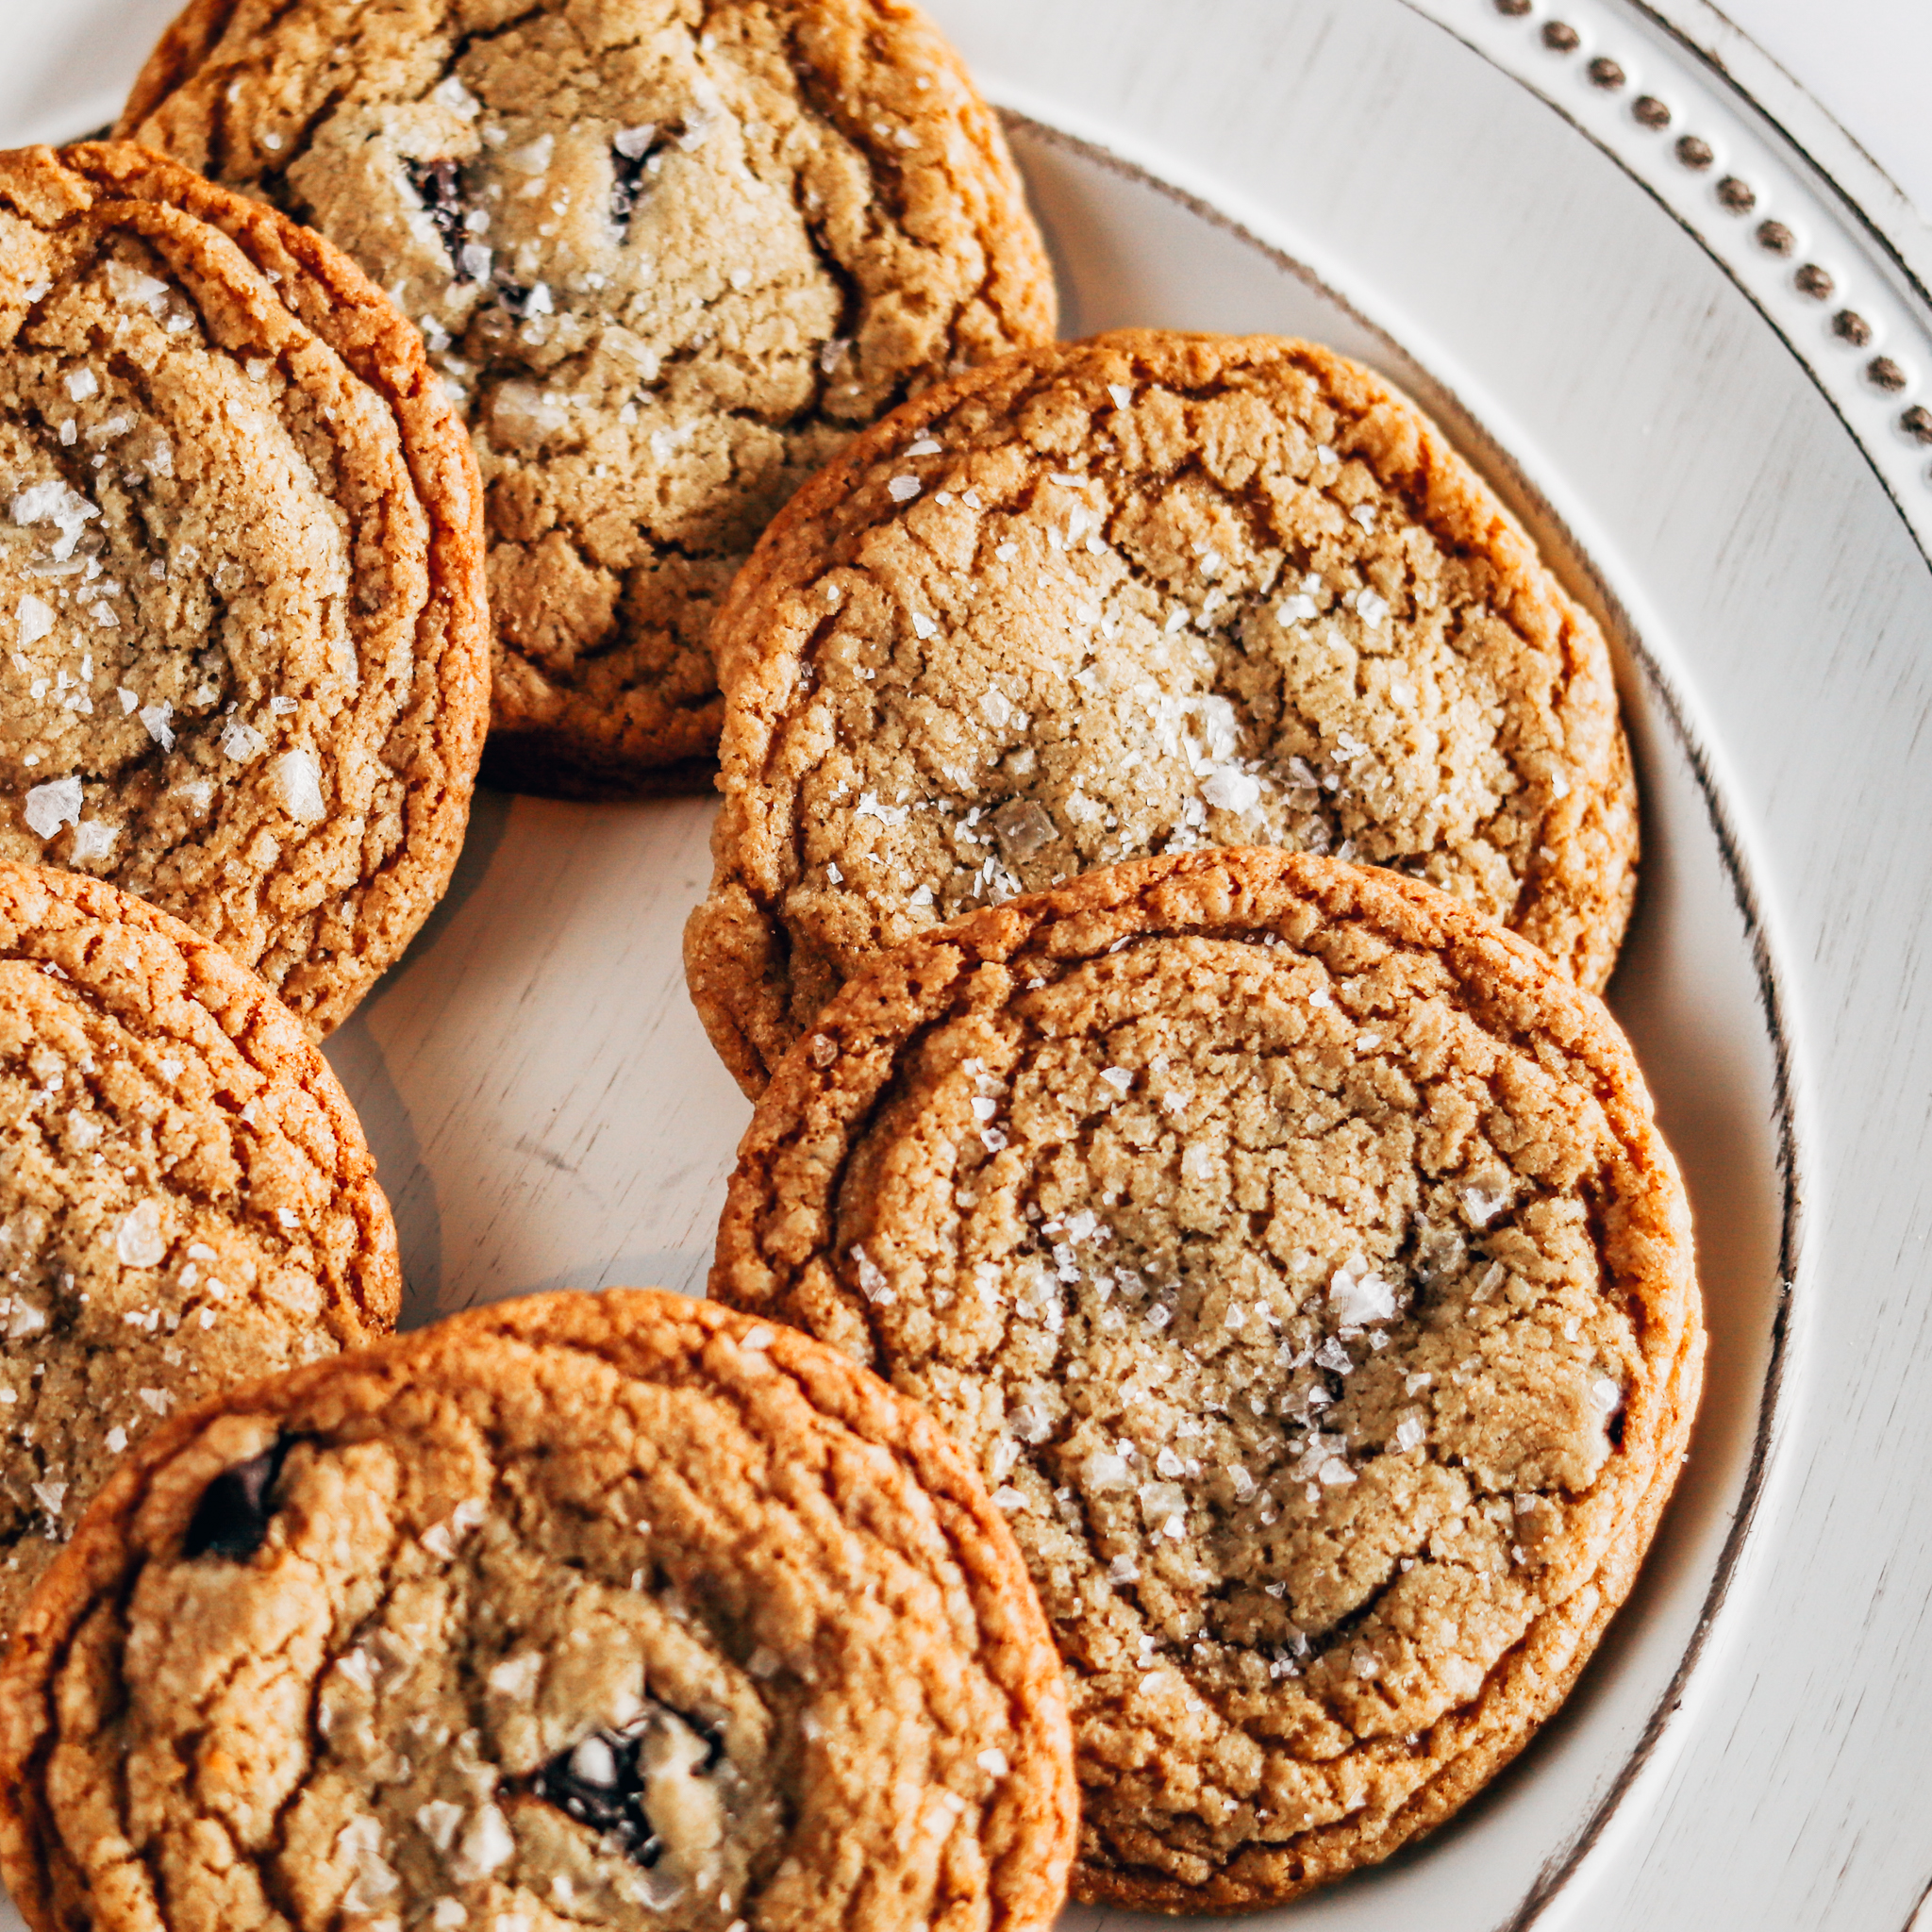 6 cookies are arranged in a circular shape on a white distressed plate on the counter top as they cool.